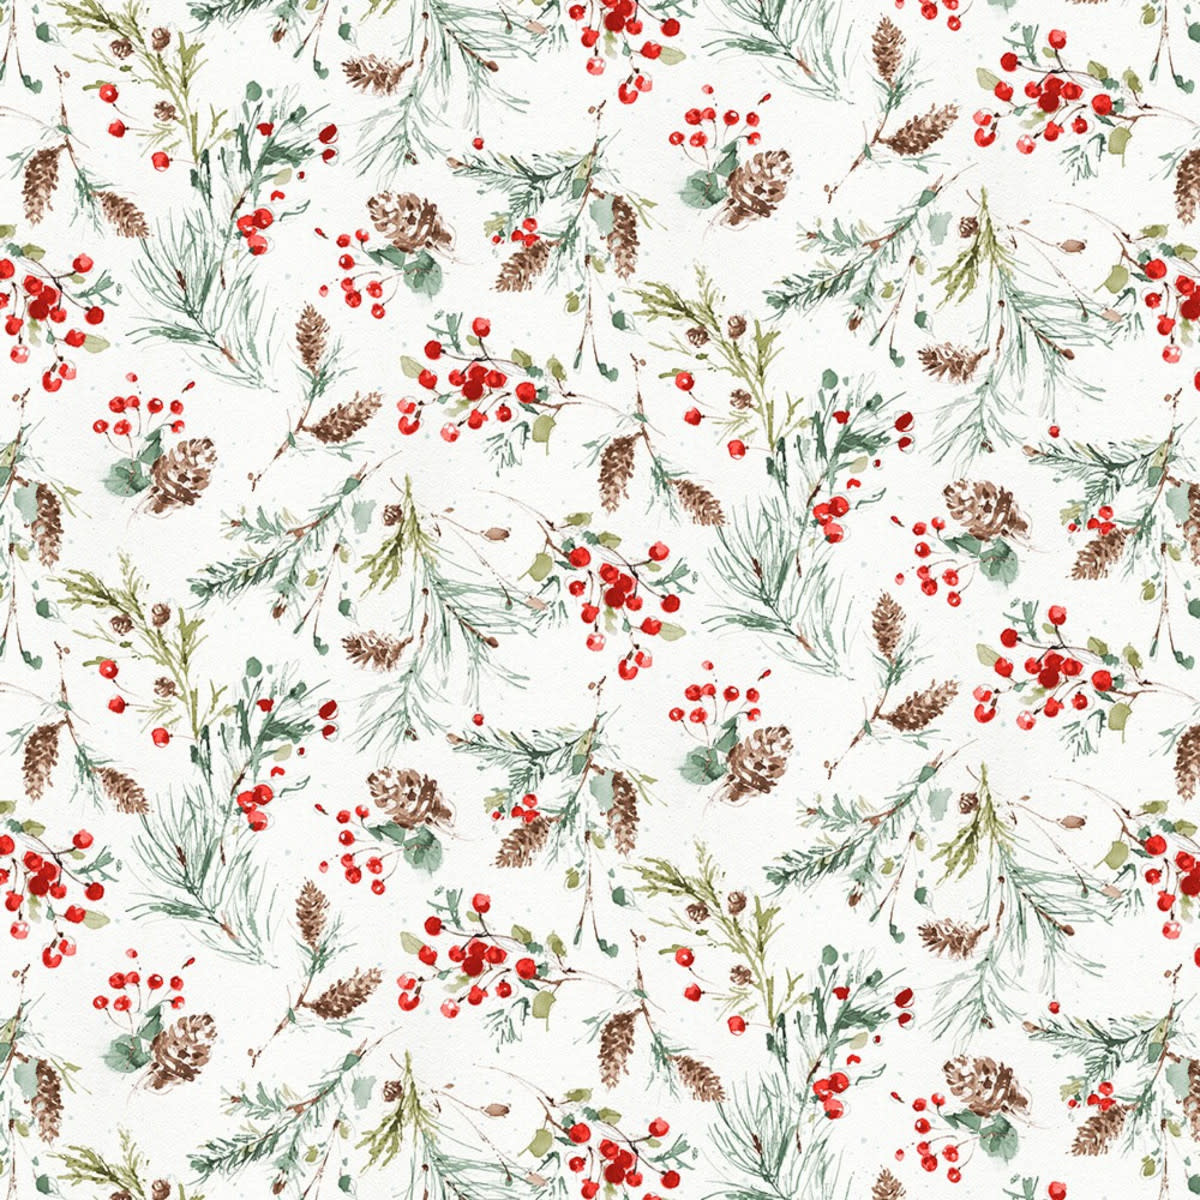 LISA AUDIT A MAGICAL CHRISTMAS, FOLIAGE ON WHITE(86465-173) $0.20 /CM OR $20/M